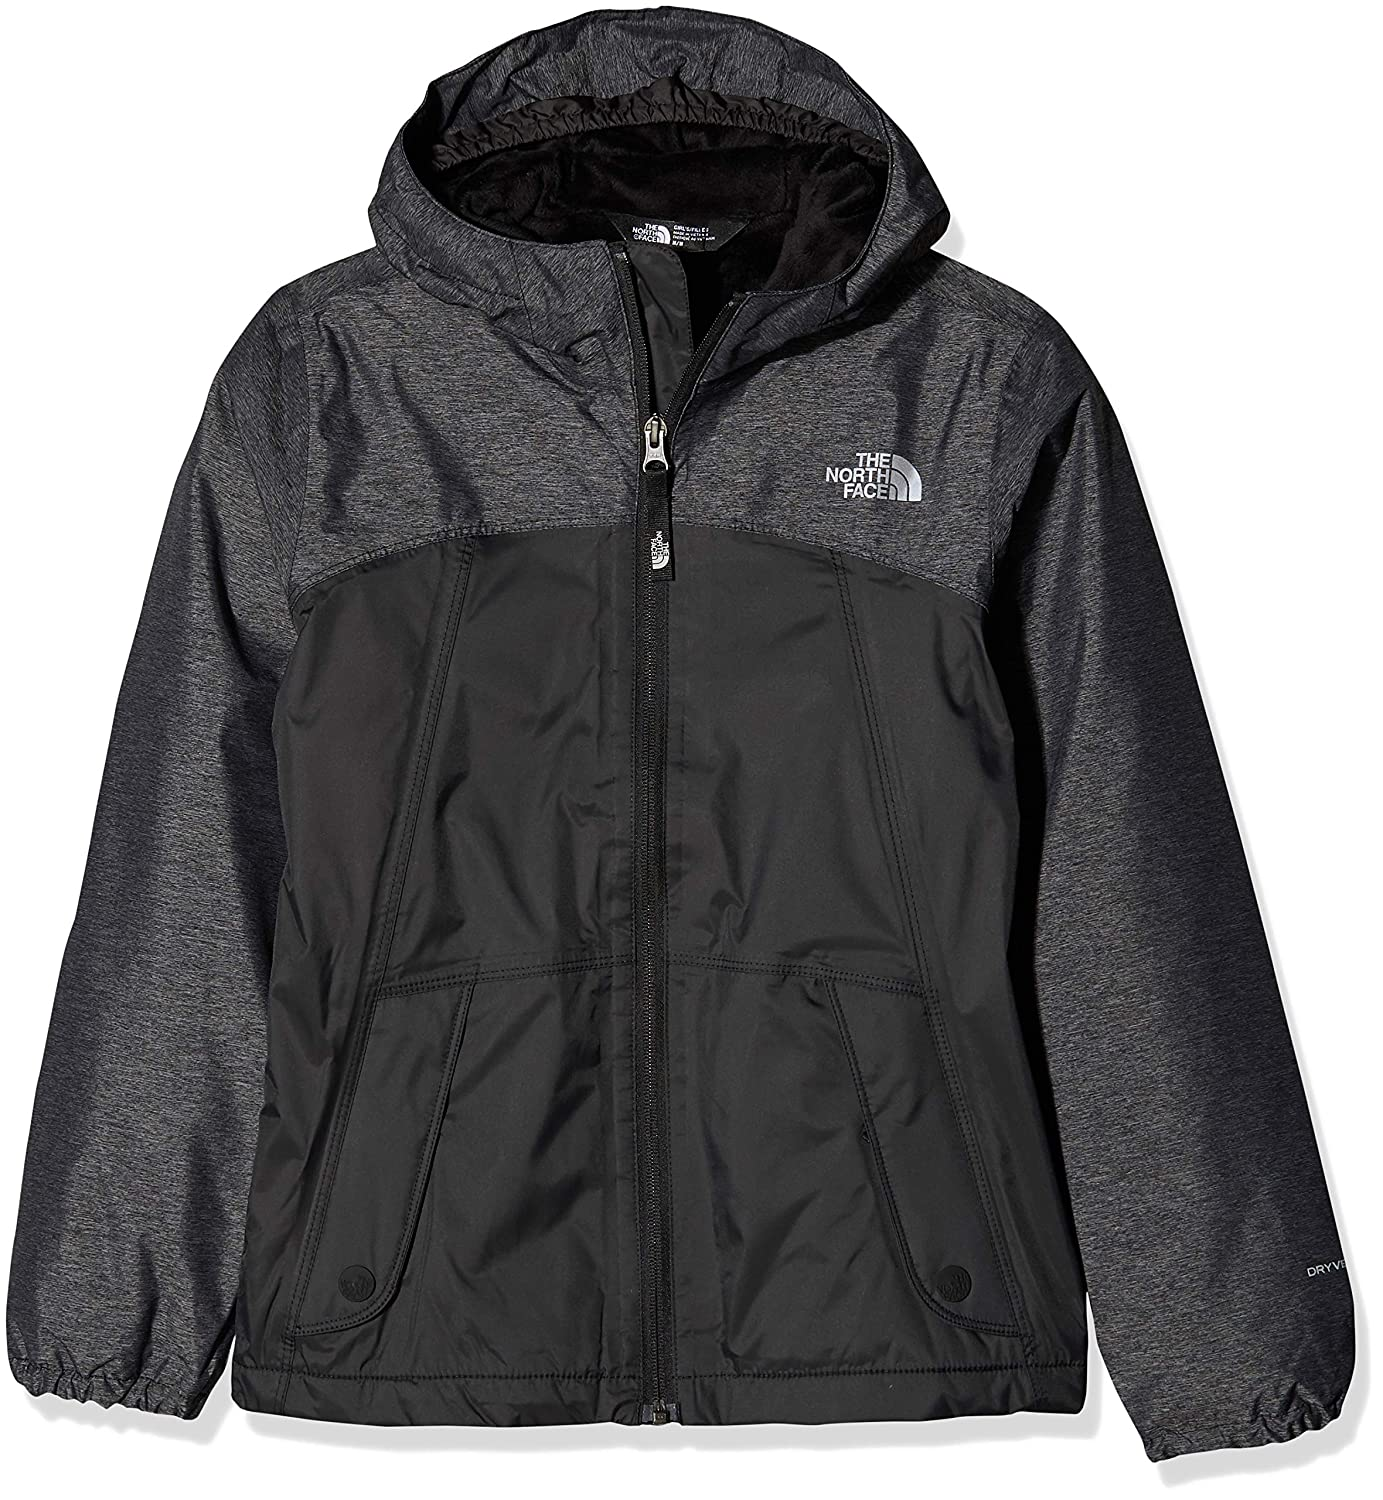 TALLA L. The North Face Kids TNF Chaqueta Warm Storm, Niñas, TNF Black, L